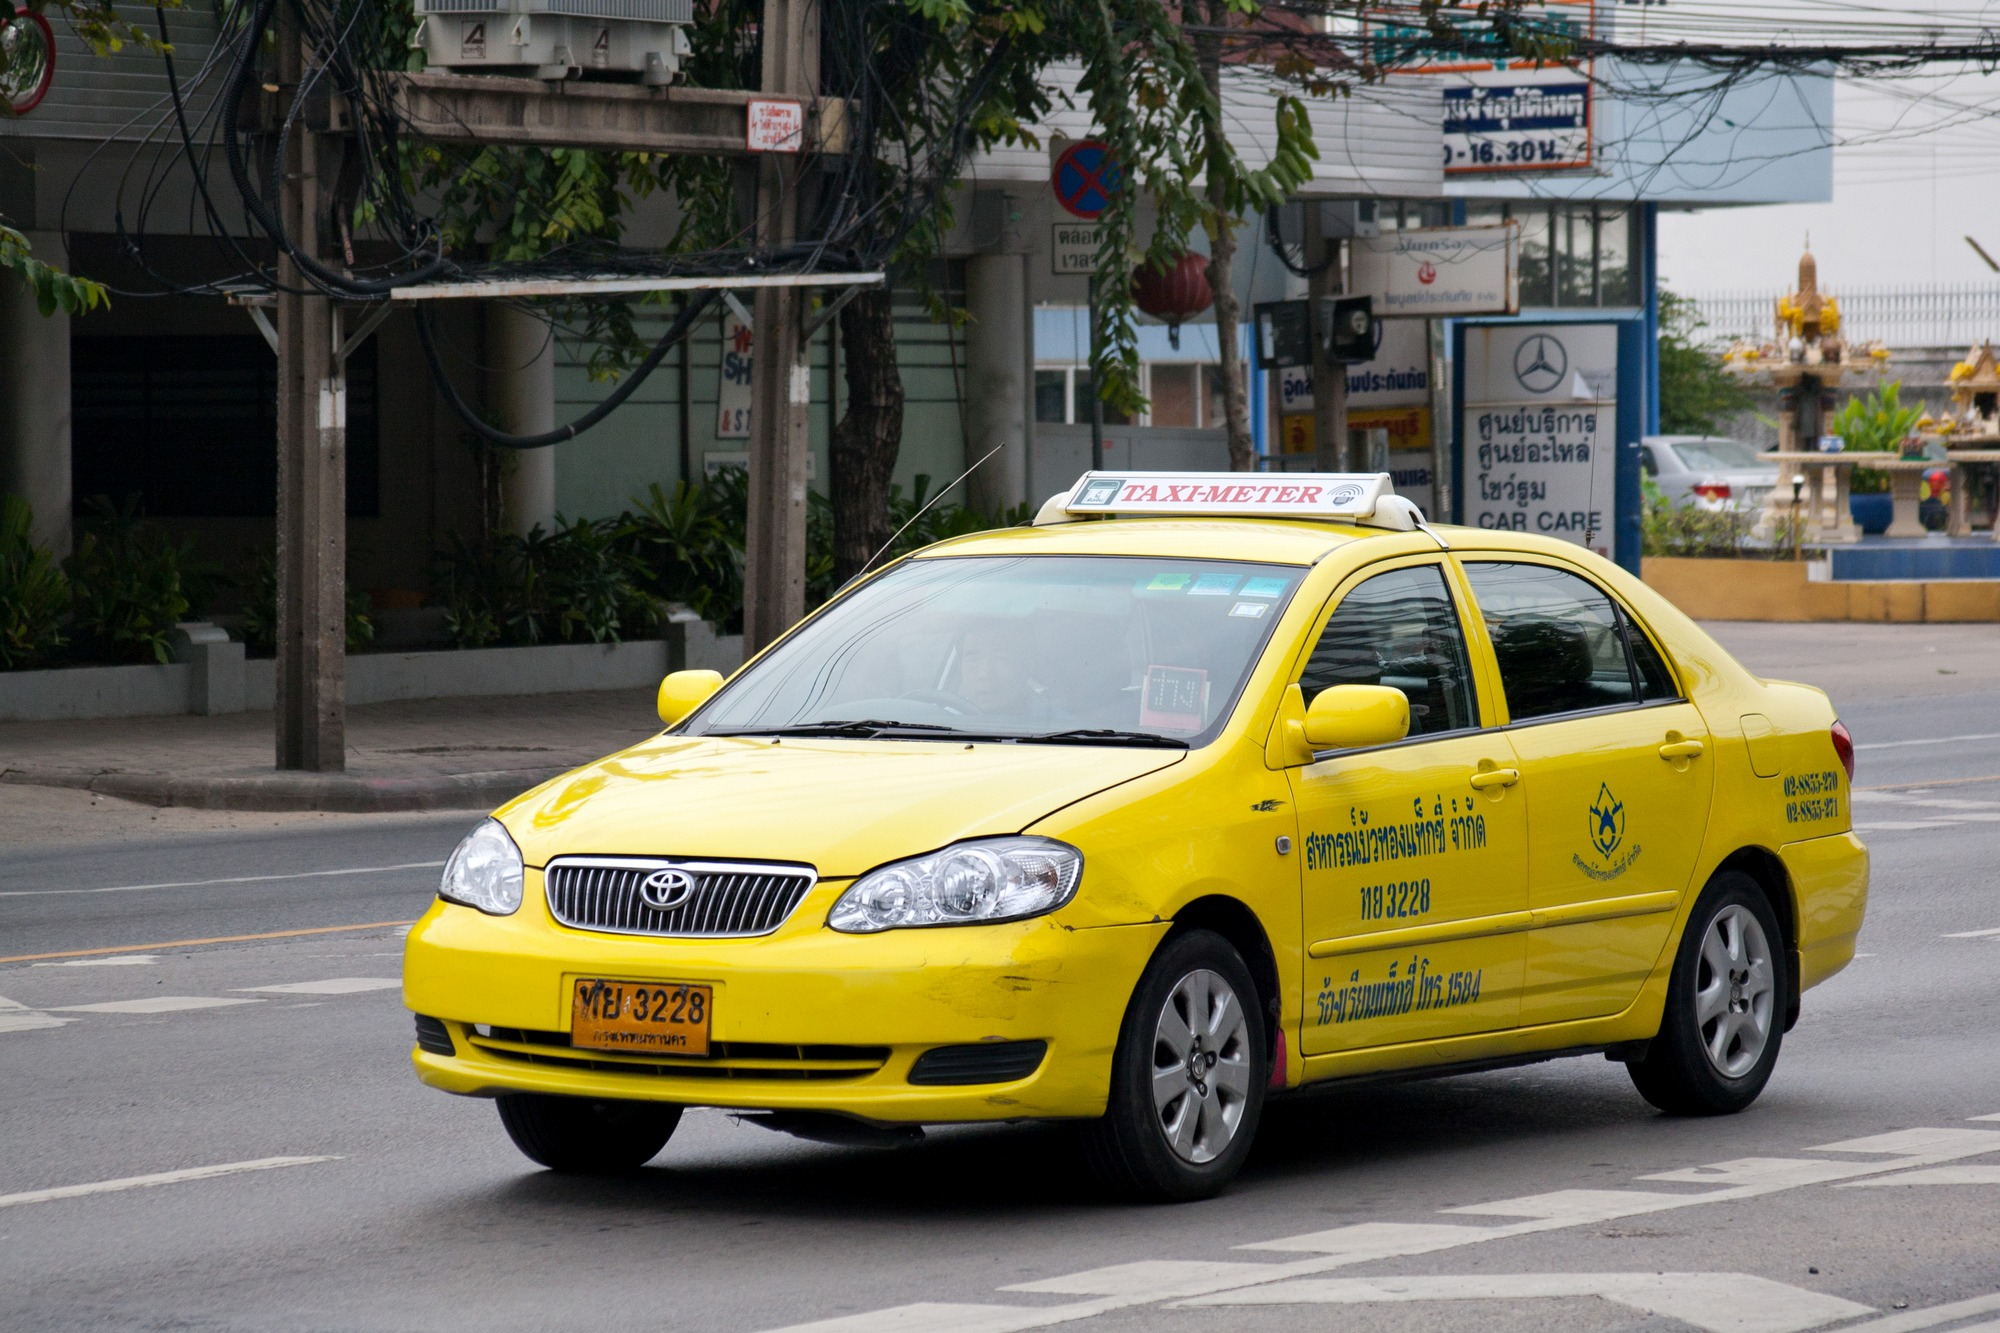 File:Taxi-meter in Bangkok 03.jpg - Wikimedia Commons